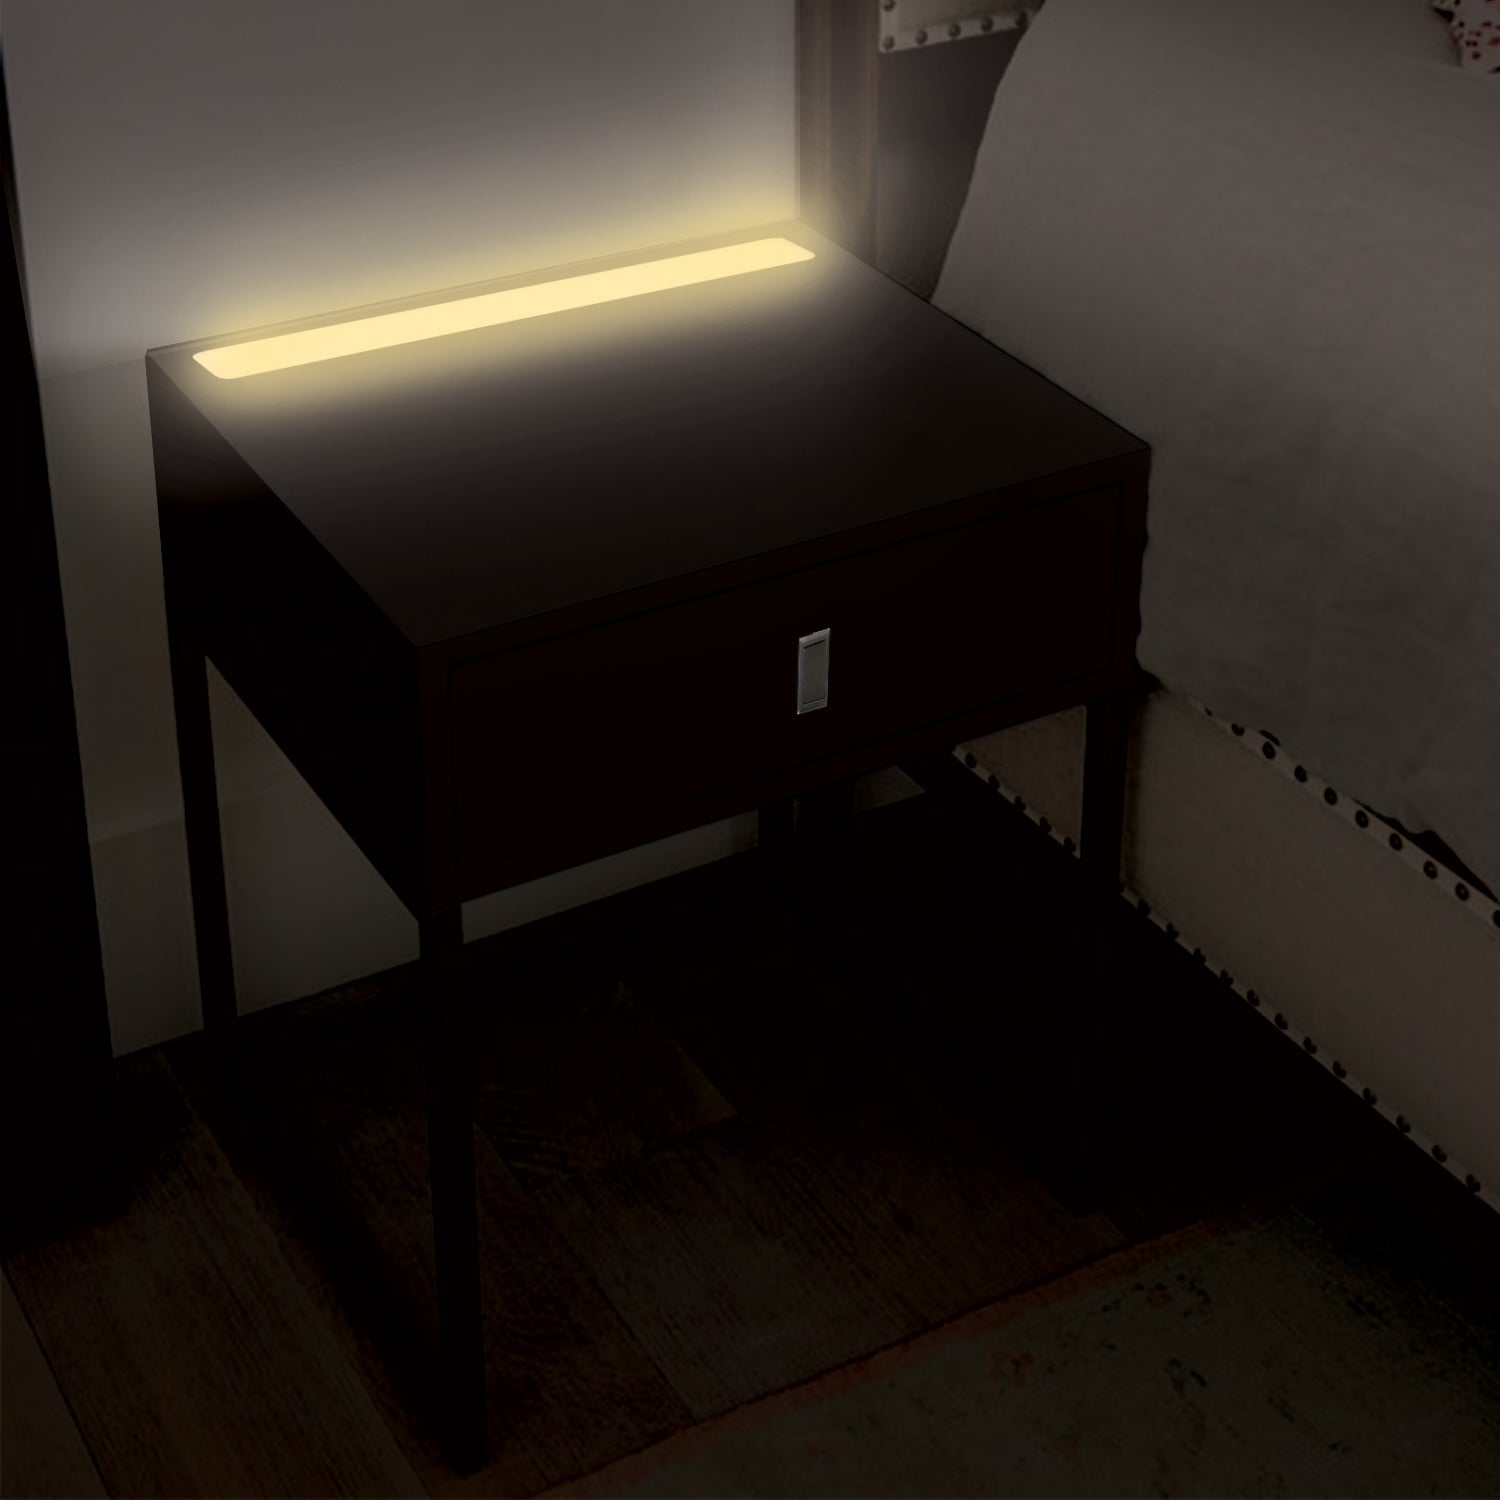 Illuminate bedside table with LED light, black